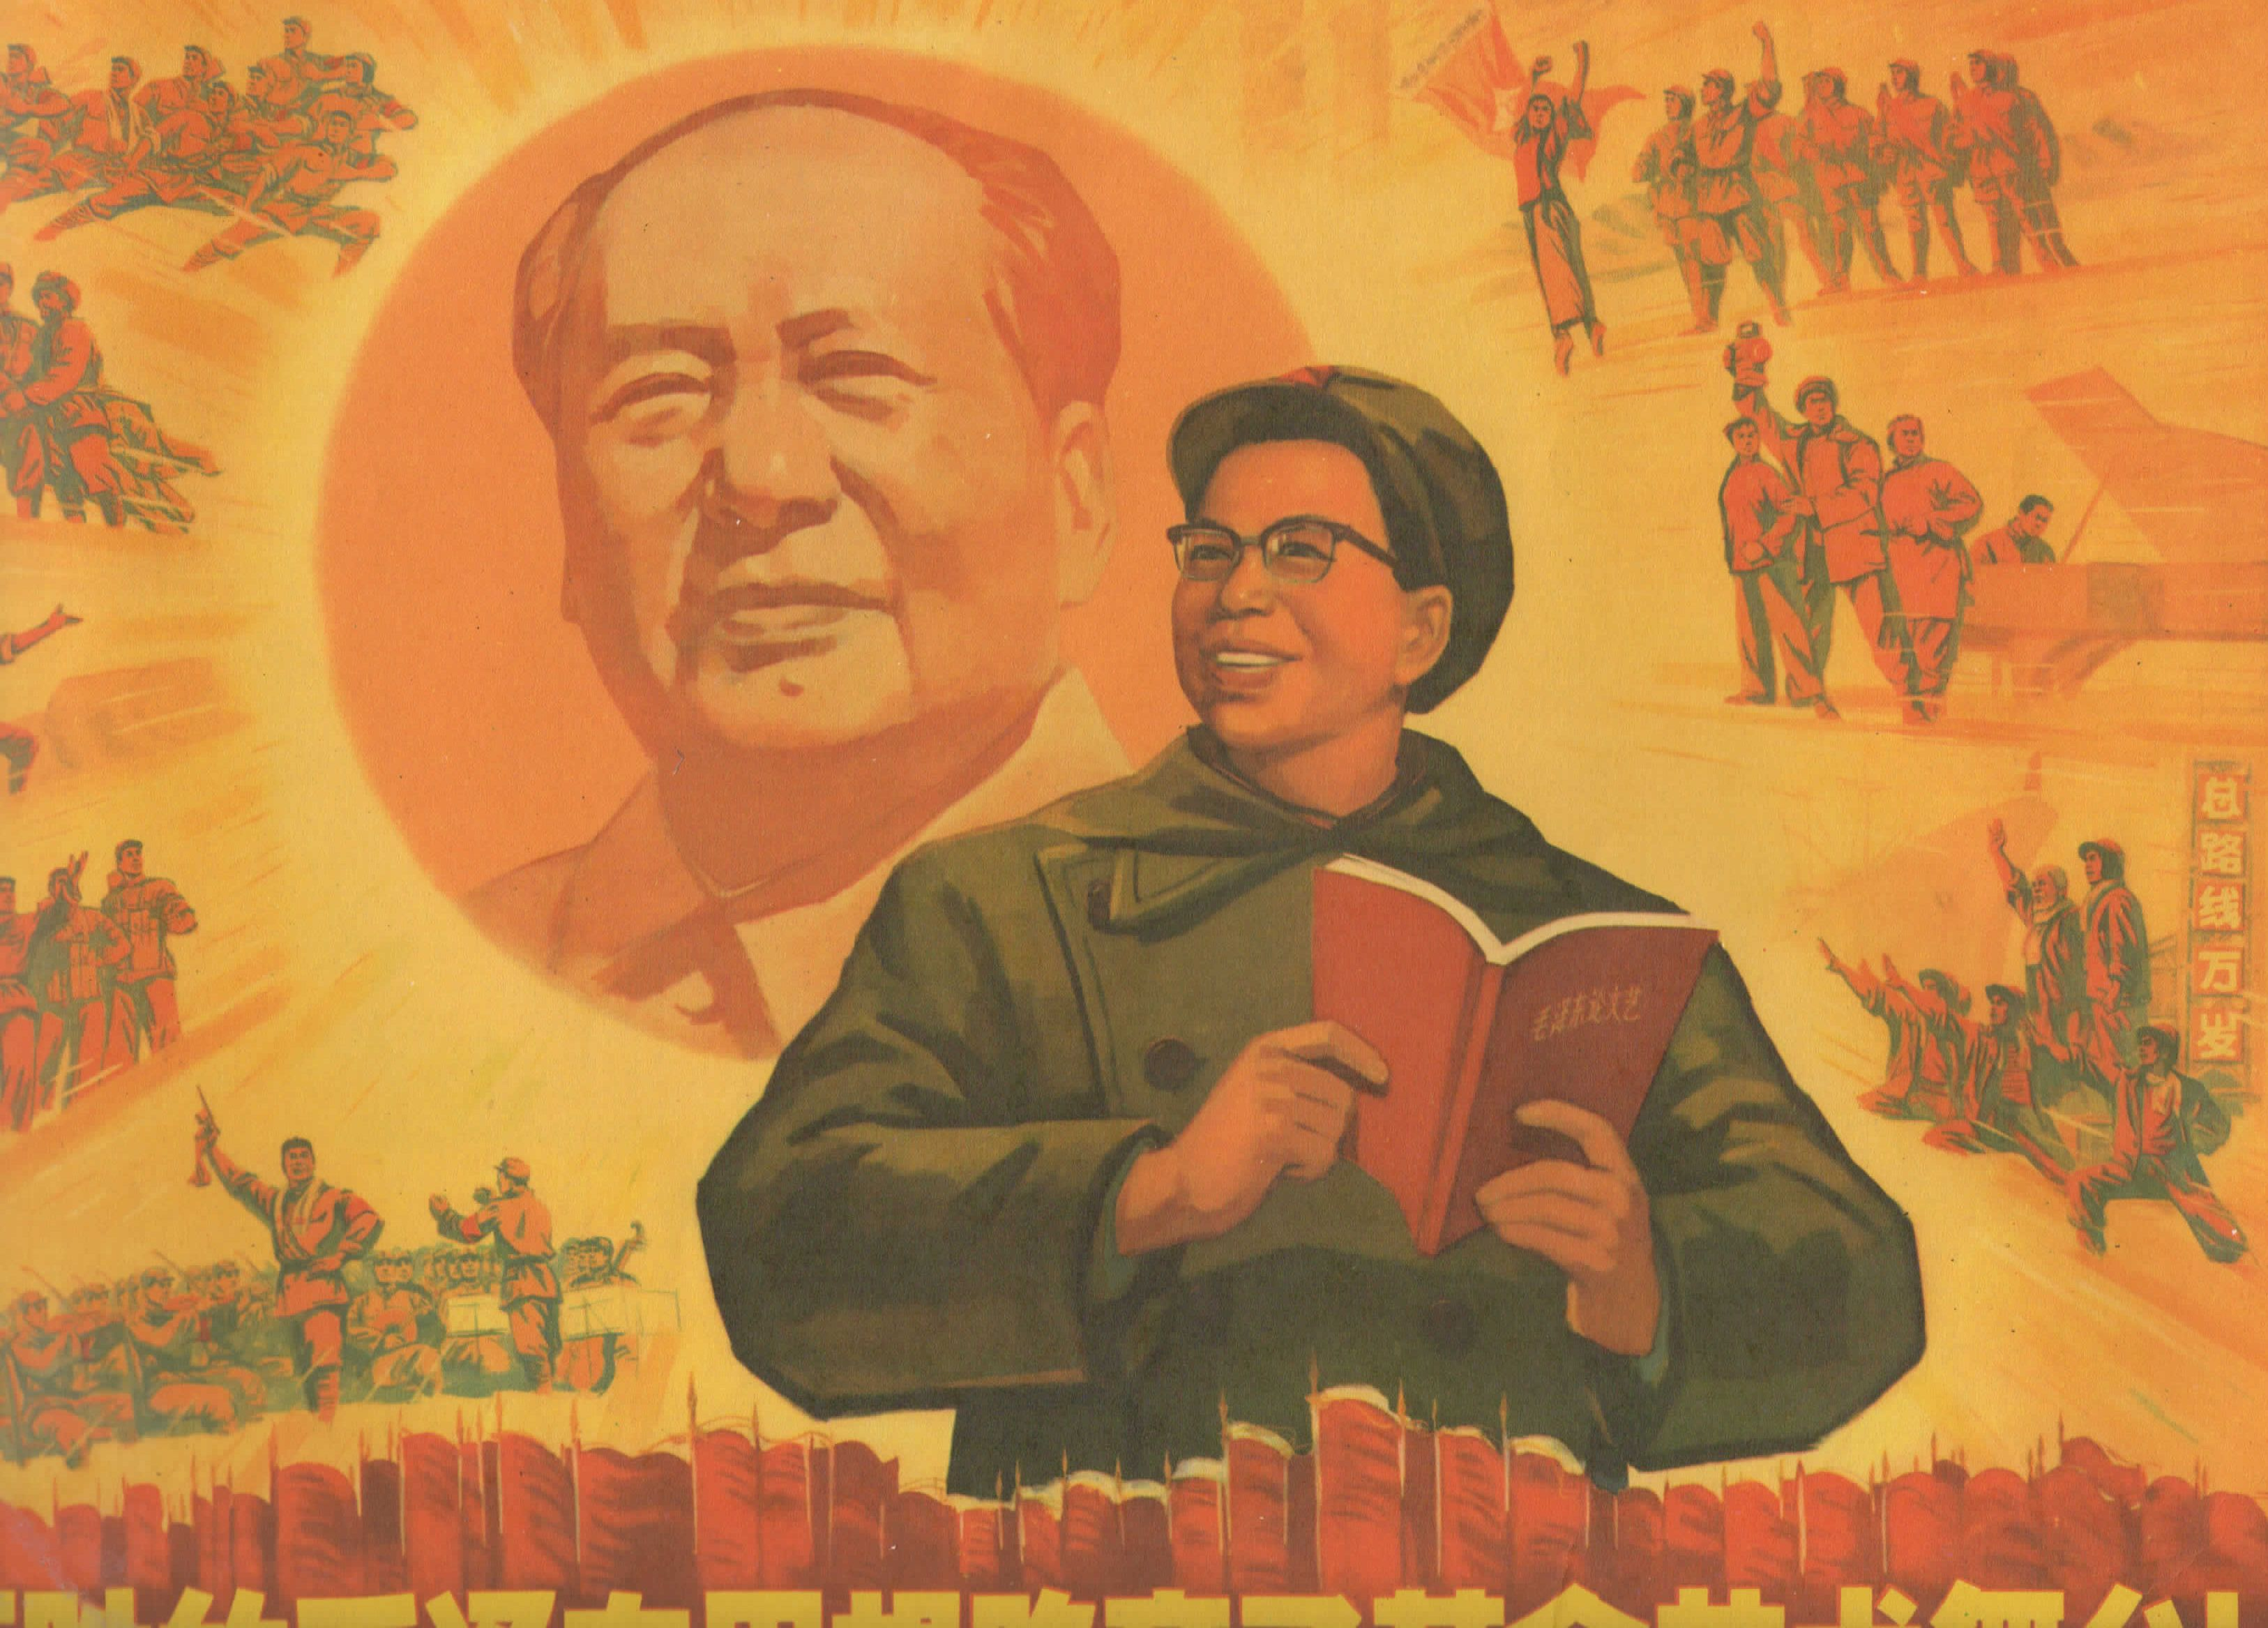 But If You Go Carrying Pictures Of Chairman Mao You Ain T Going To Make It With Anyone Anyhow John Lennon Revolution Art Historical Figures Painting